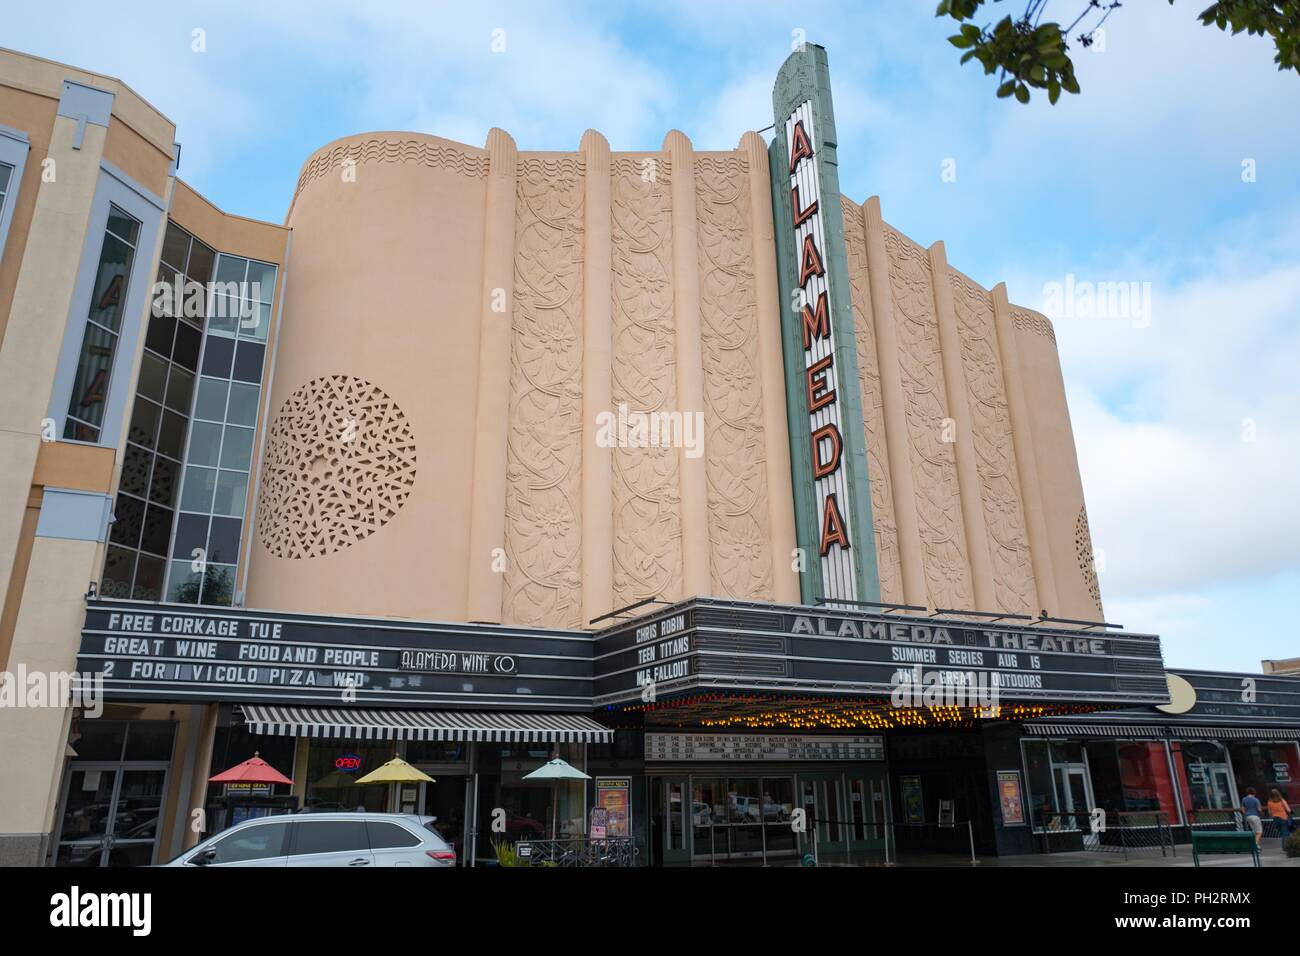 Movie Theater Marquee High Resolution Stock Photography And Images Alamy